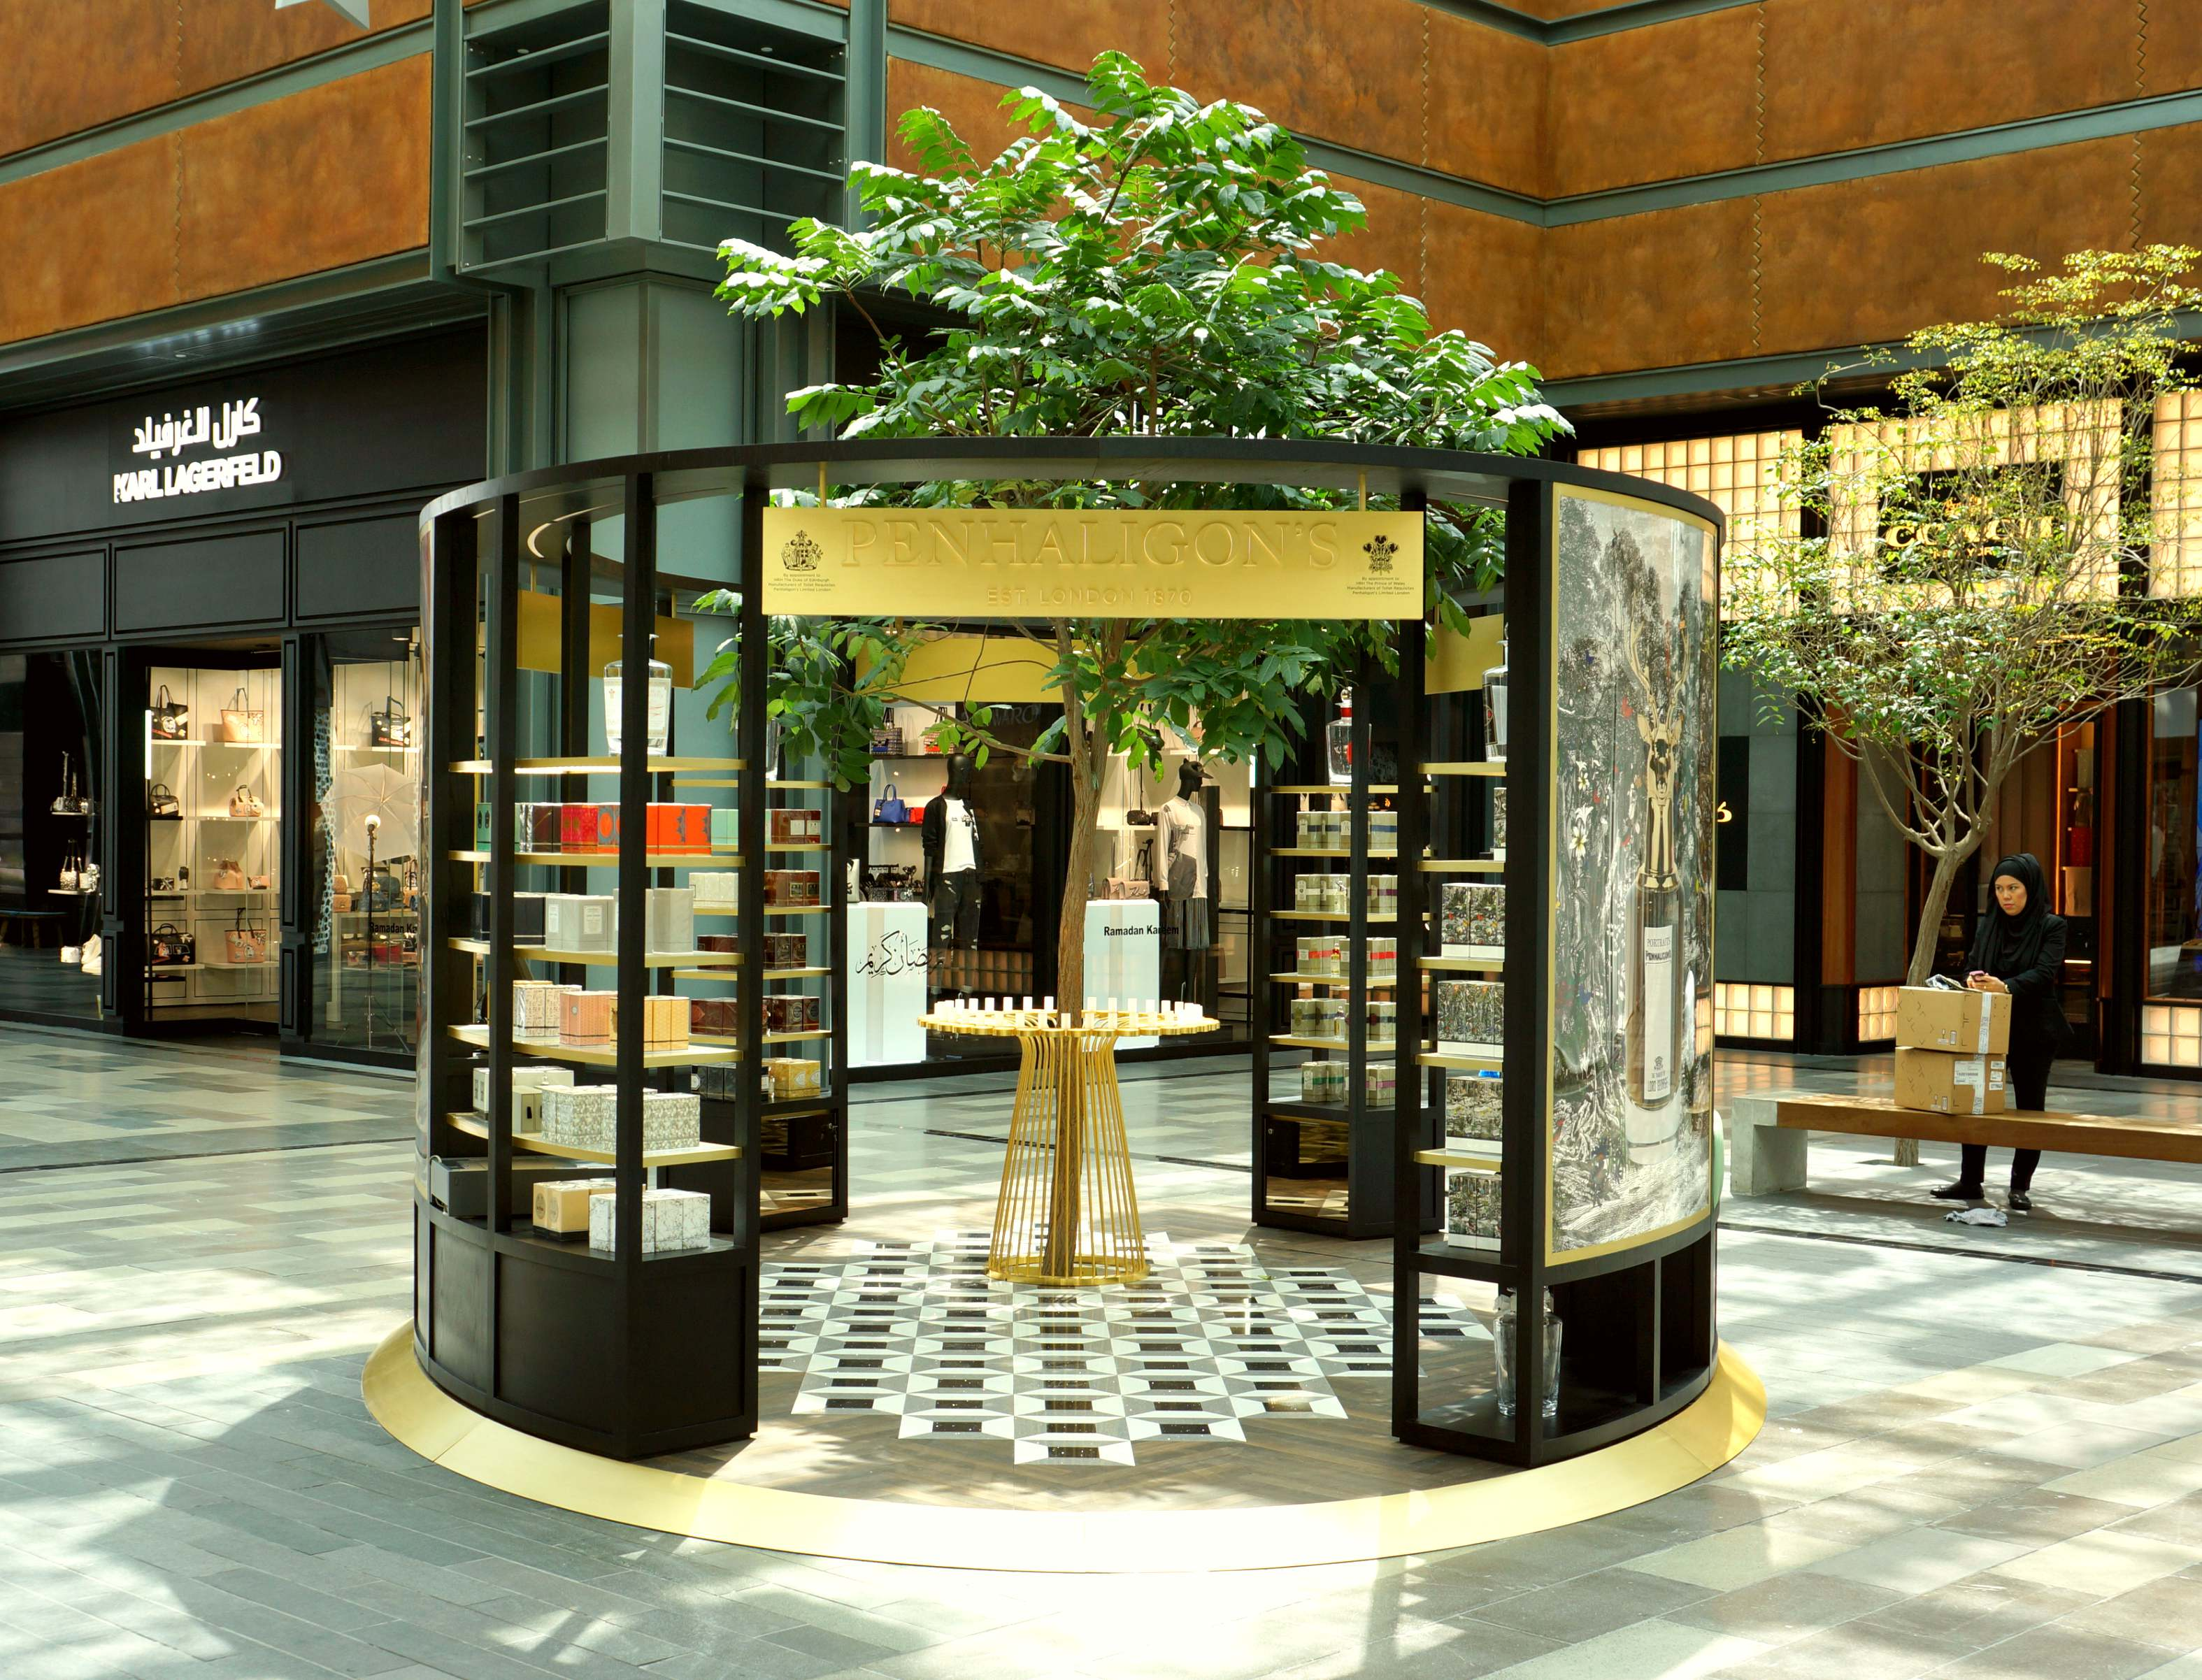 Penhaligons | Perfumes | 536-17, Chalhoub Group, Penhaligons, Pop-Up Stores, City Walk | Dubai